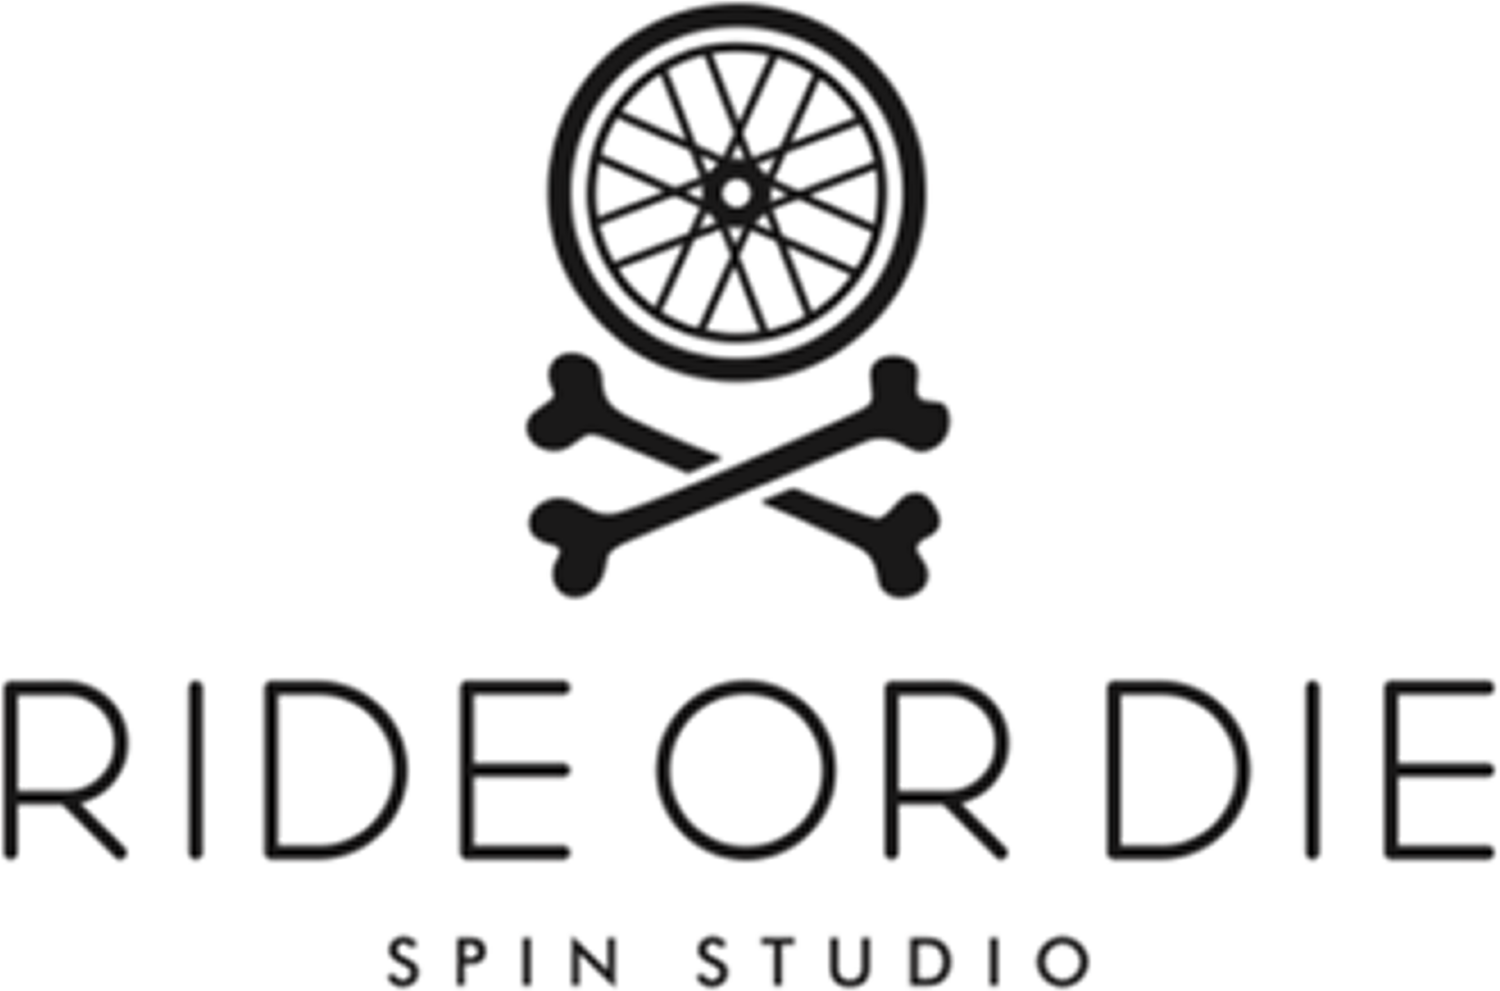 Ride Or Die Spin Studio